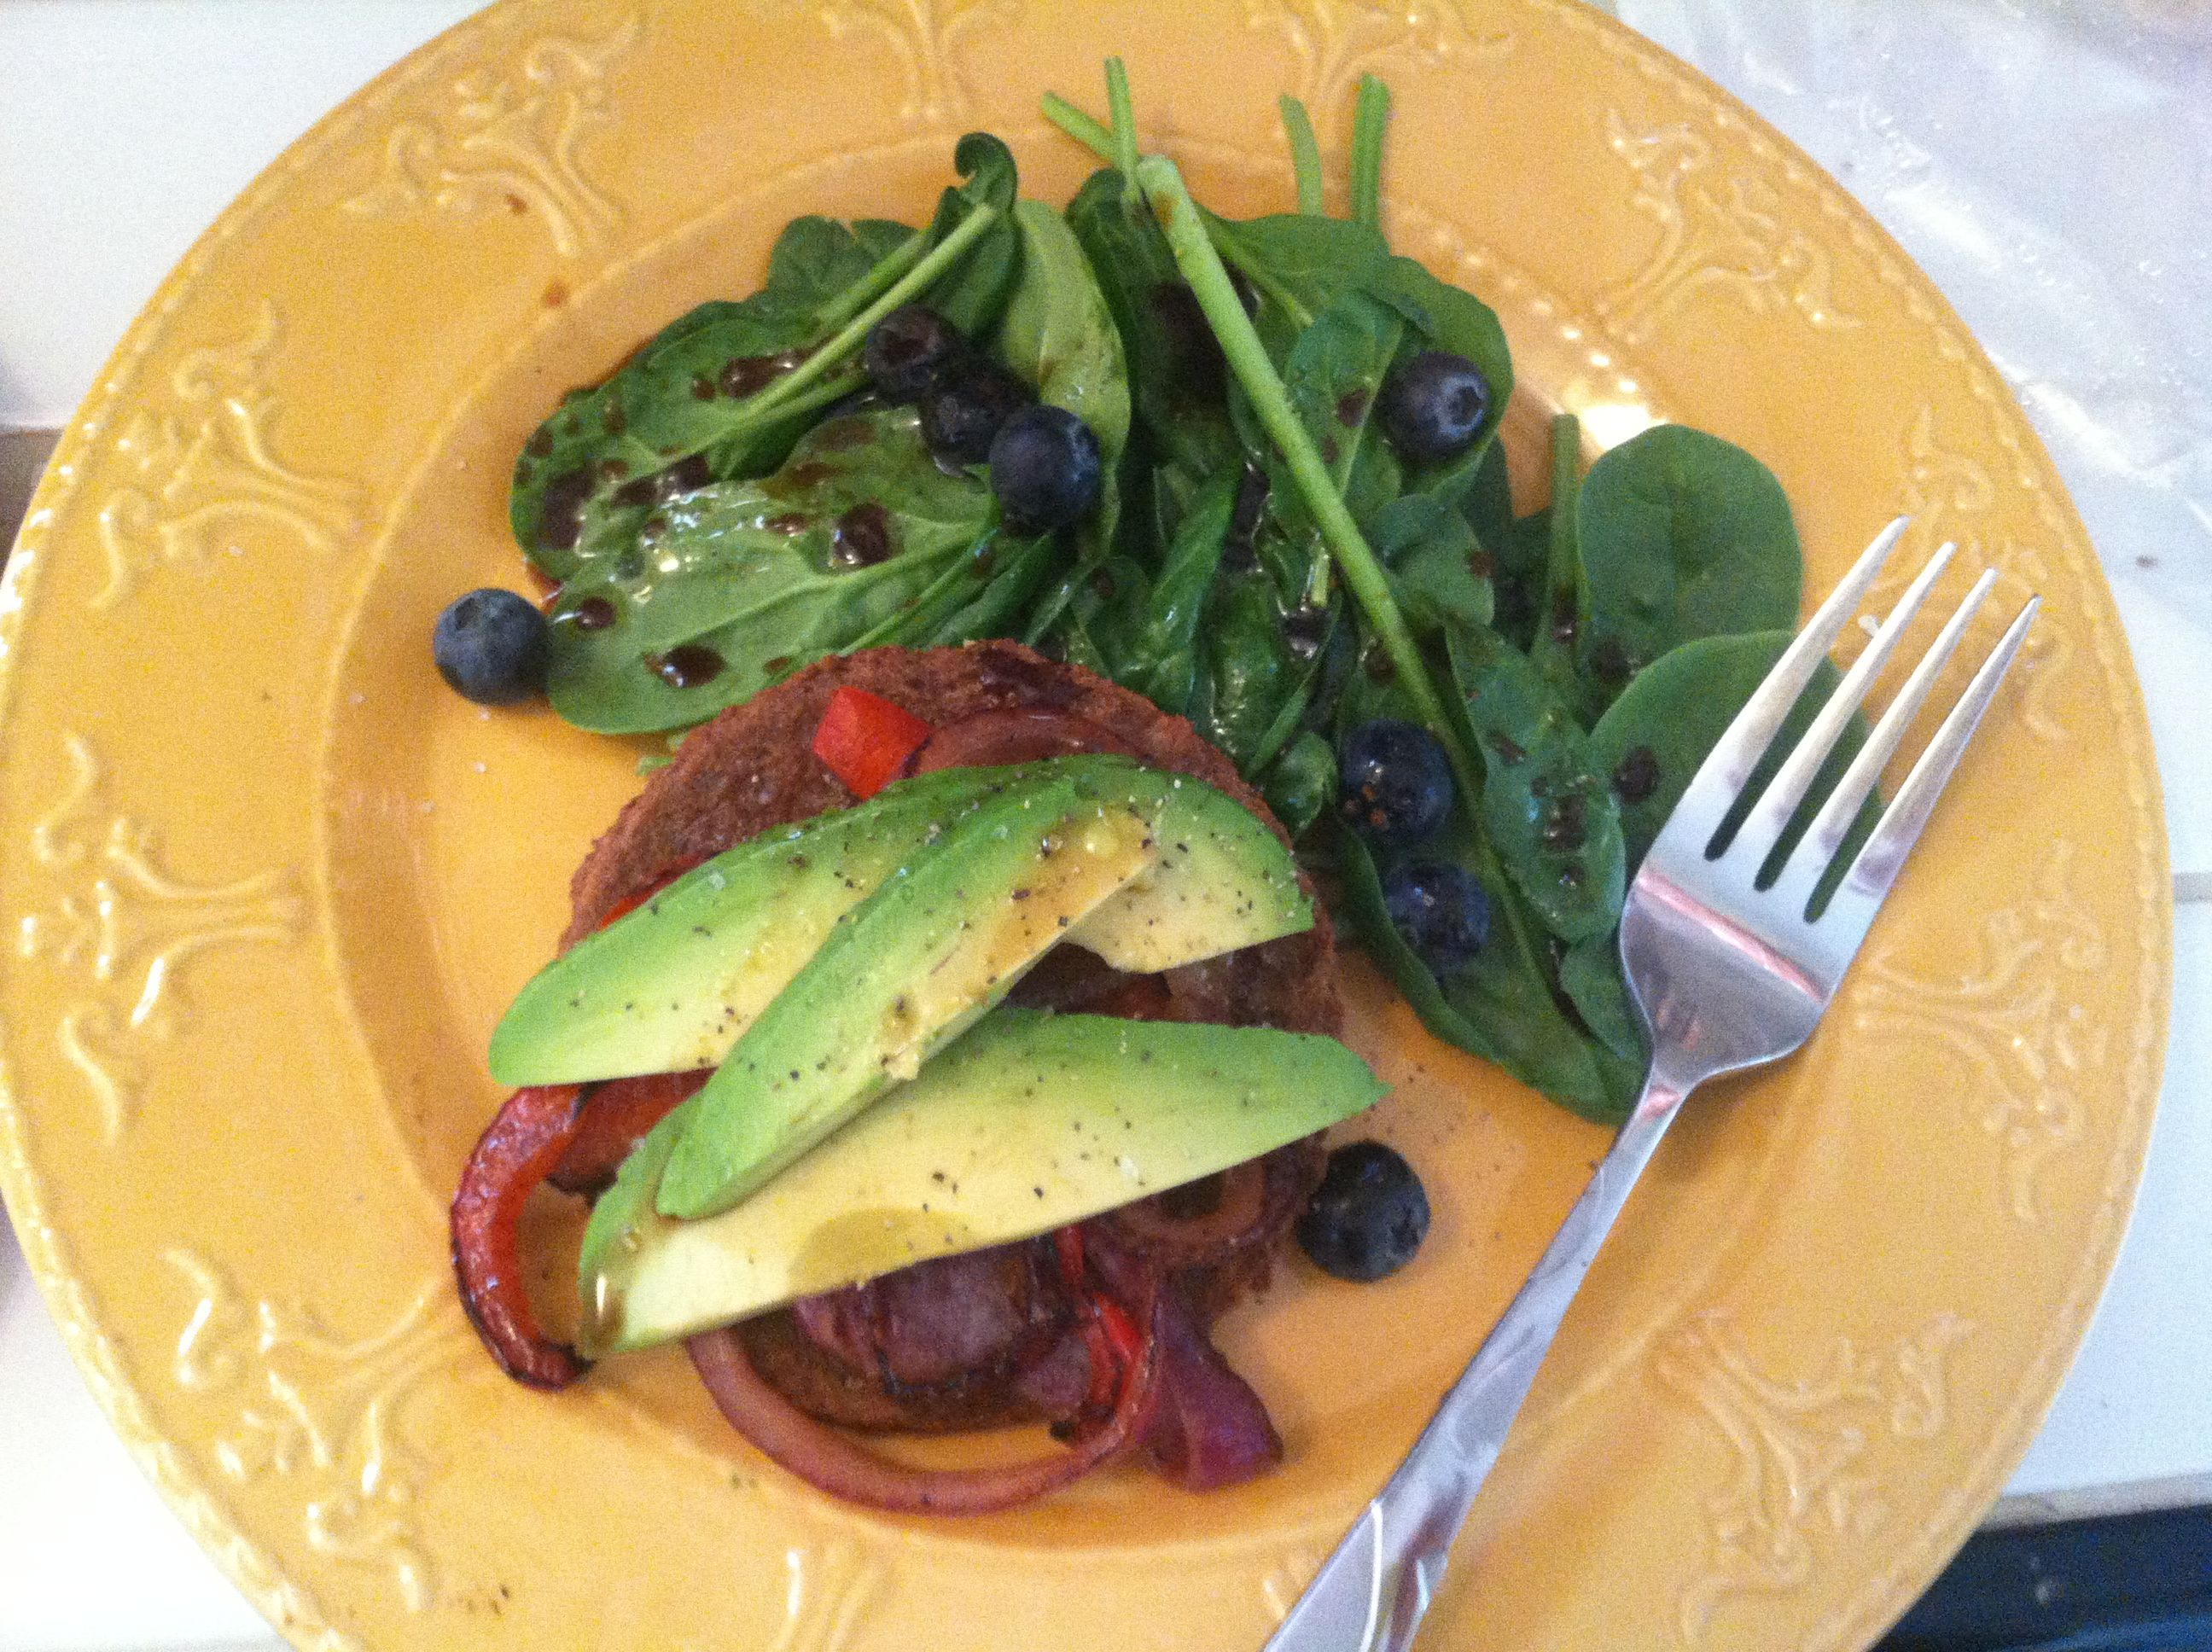 Pin by Wendy Kuhl on Recipes - Healthy Living | Pinterest